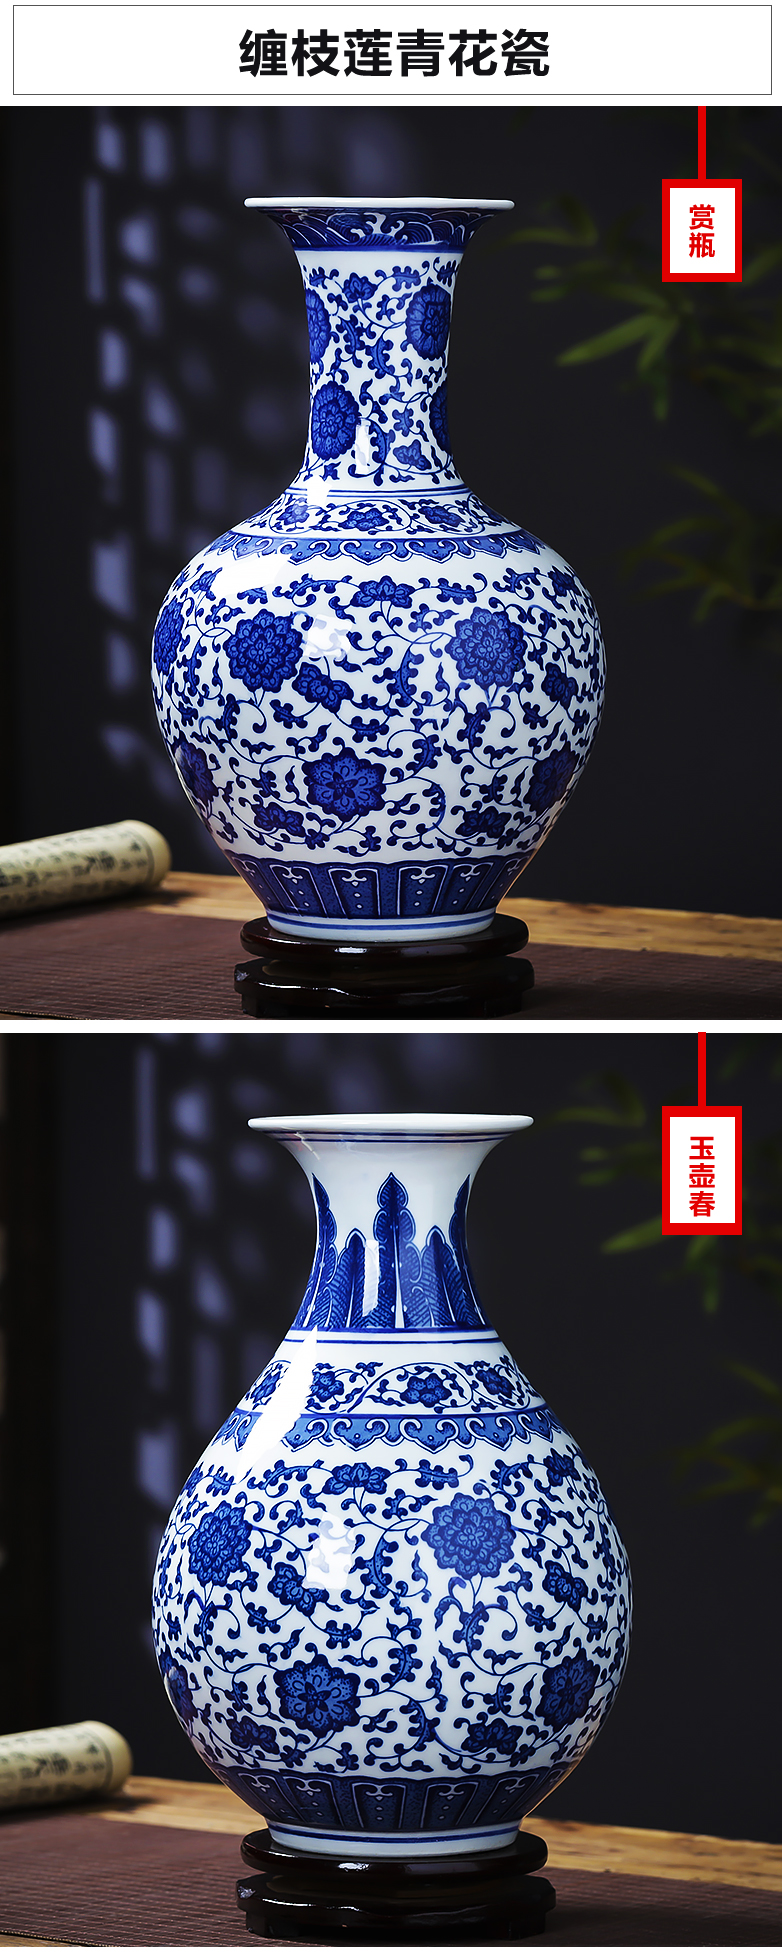 Jingdezhen ceramics new sitting room of Chinese style household furnishing articles antique blue and white porcelain vase rich ancient frame flower decorations